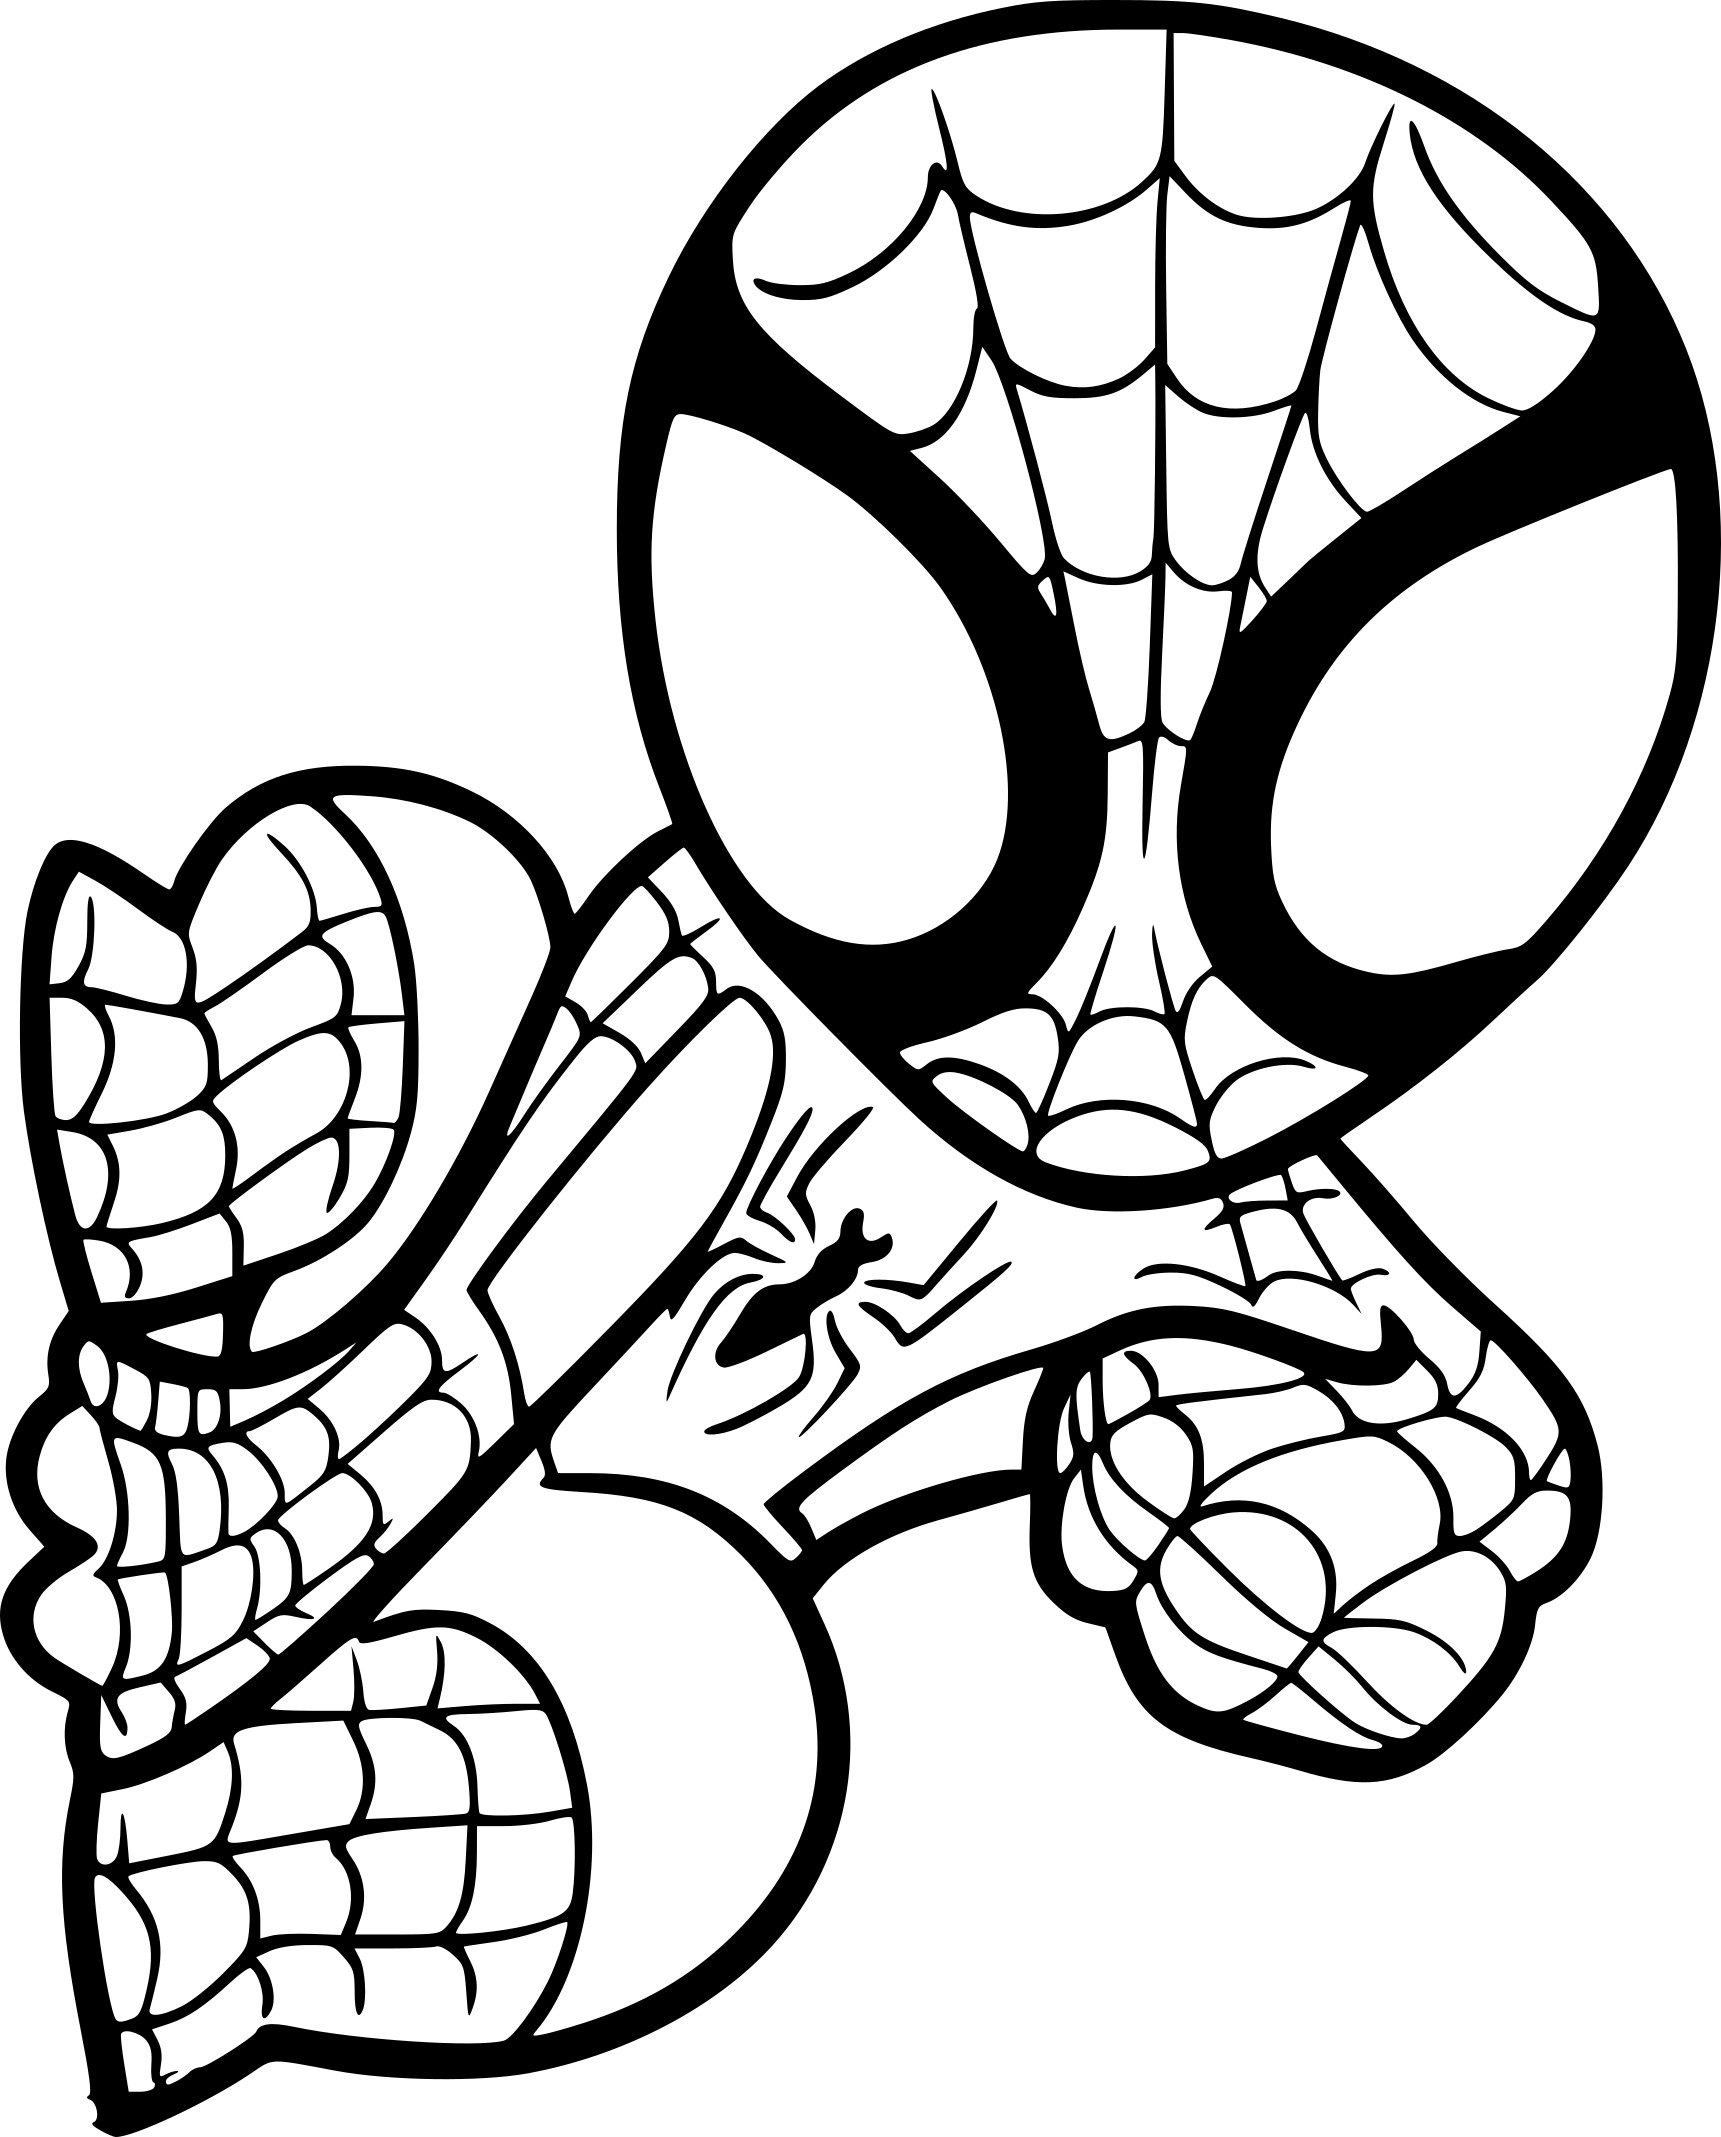 Coloriage spiderman facile imprimer sur coloriages info - Coloriage spiderman imprimer ...